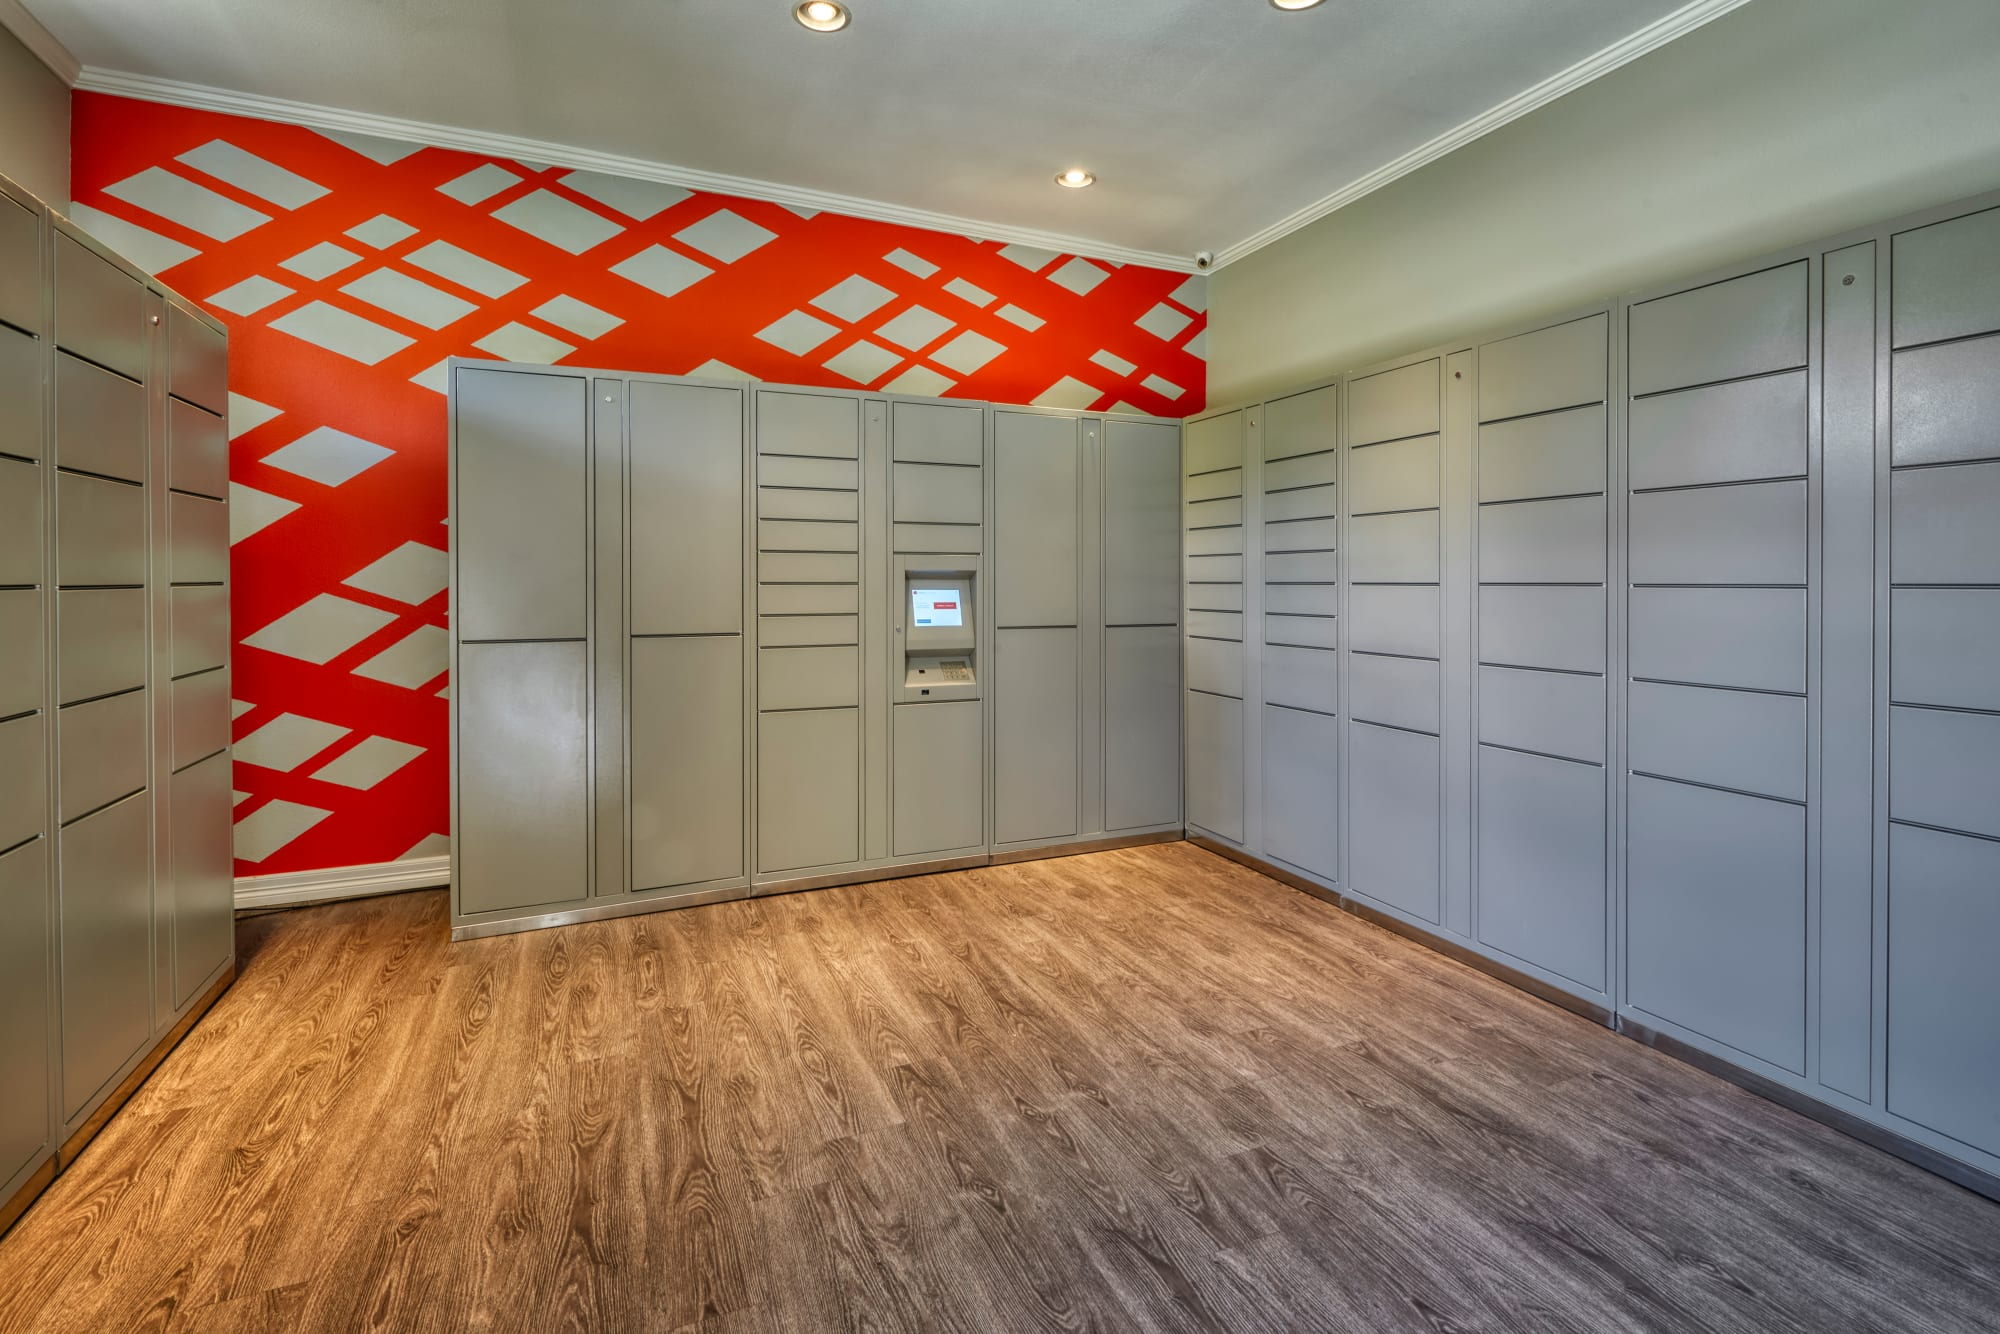 Many sizes of secure lockers in the package room at Hawthorne Hill Apartments in Thornton, Colorado